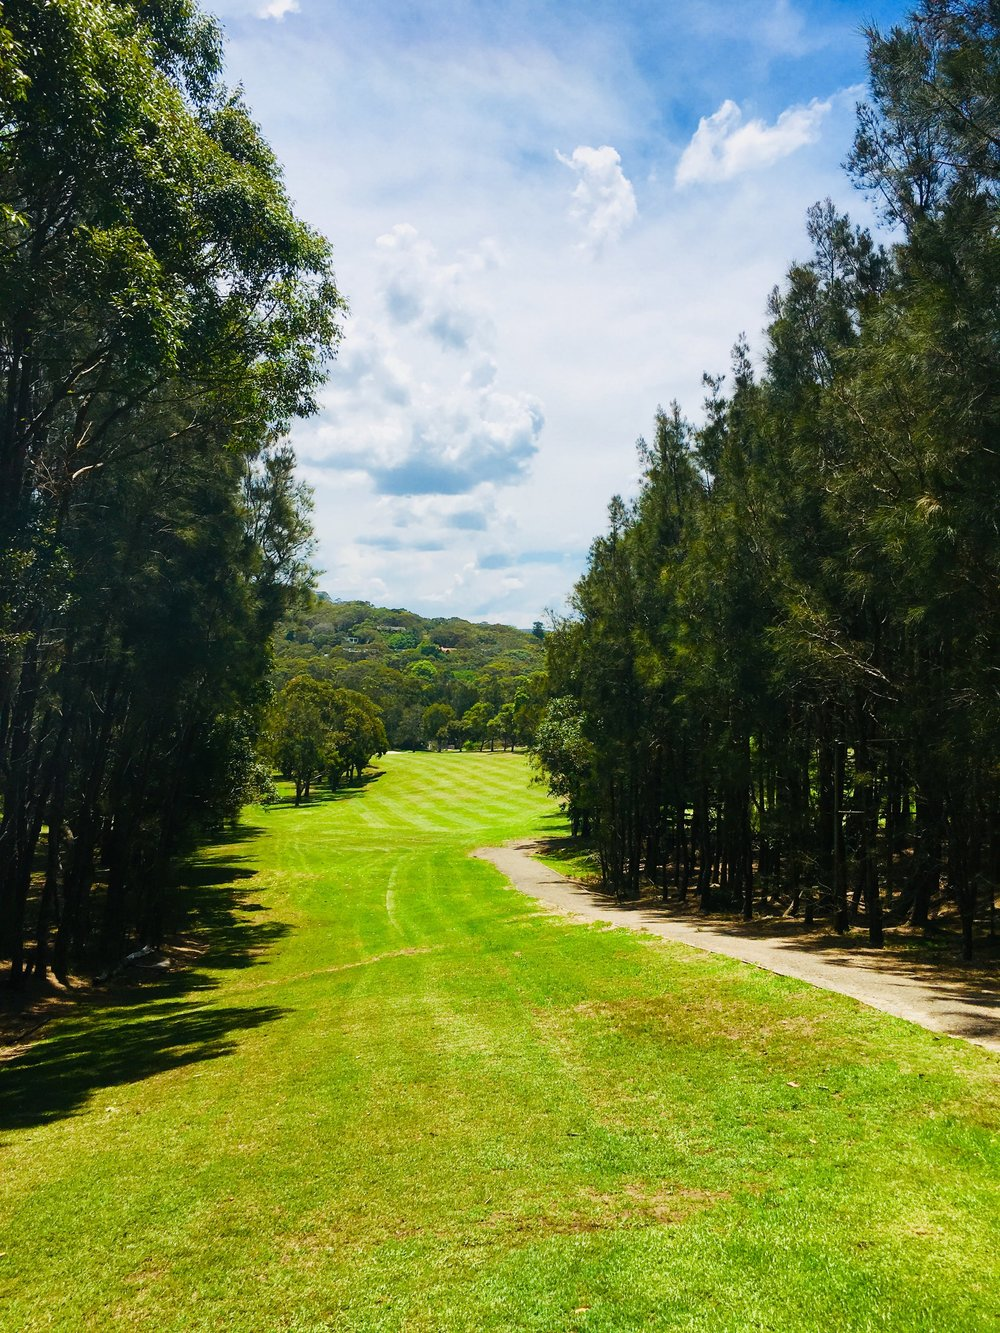 Hole Two - PAR 4 - 334 metresThe signature hole at Avalon Golf Course presents itself with a wonderful tee shot through a narrow shoot of trees. It is best to favour the right side of the fairway as there is a severe slope from right to left. Once this challenge is navigated you are left with a short or mid iron to a flat green